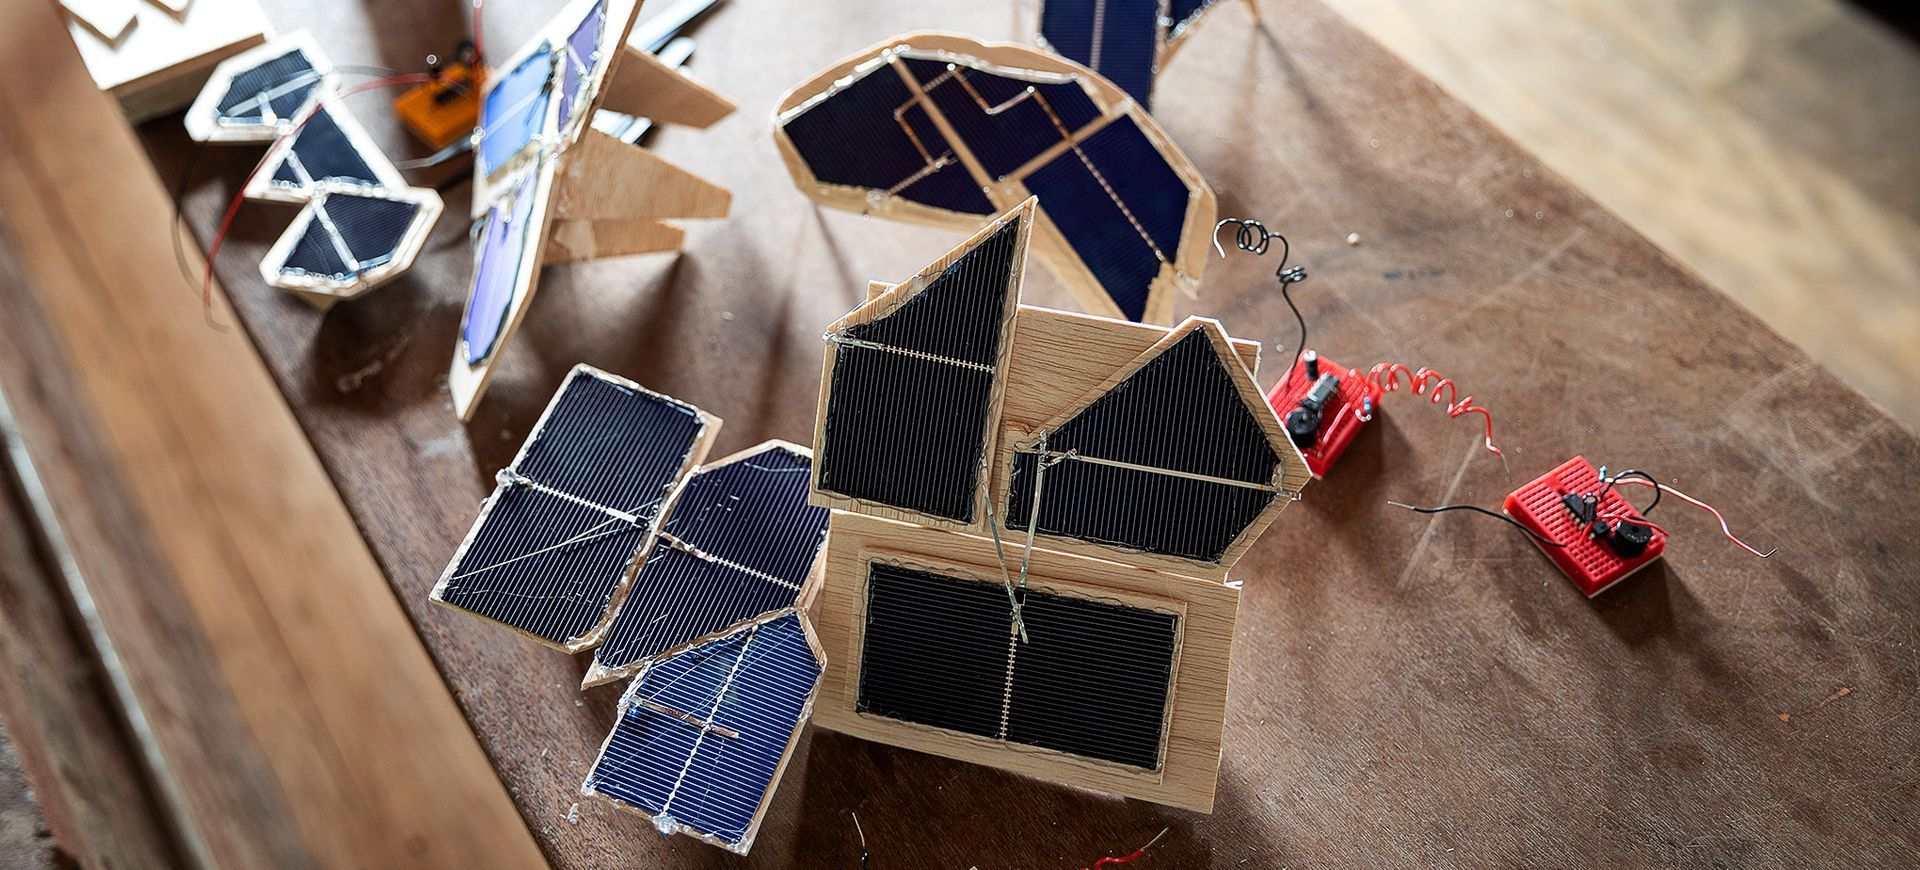 Solar powered robots that move